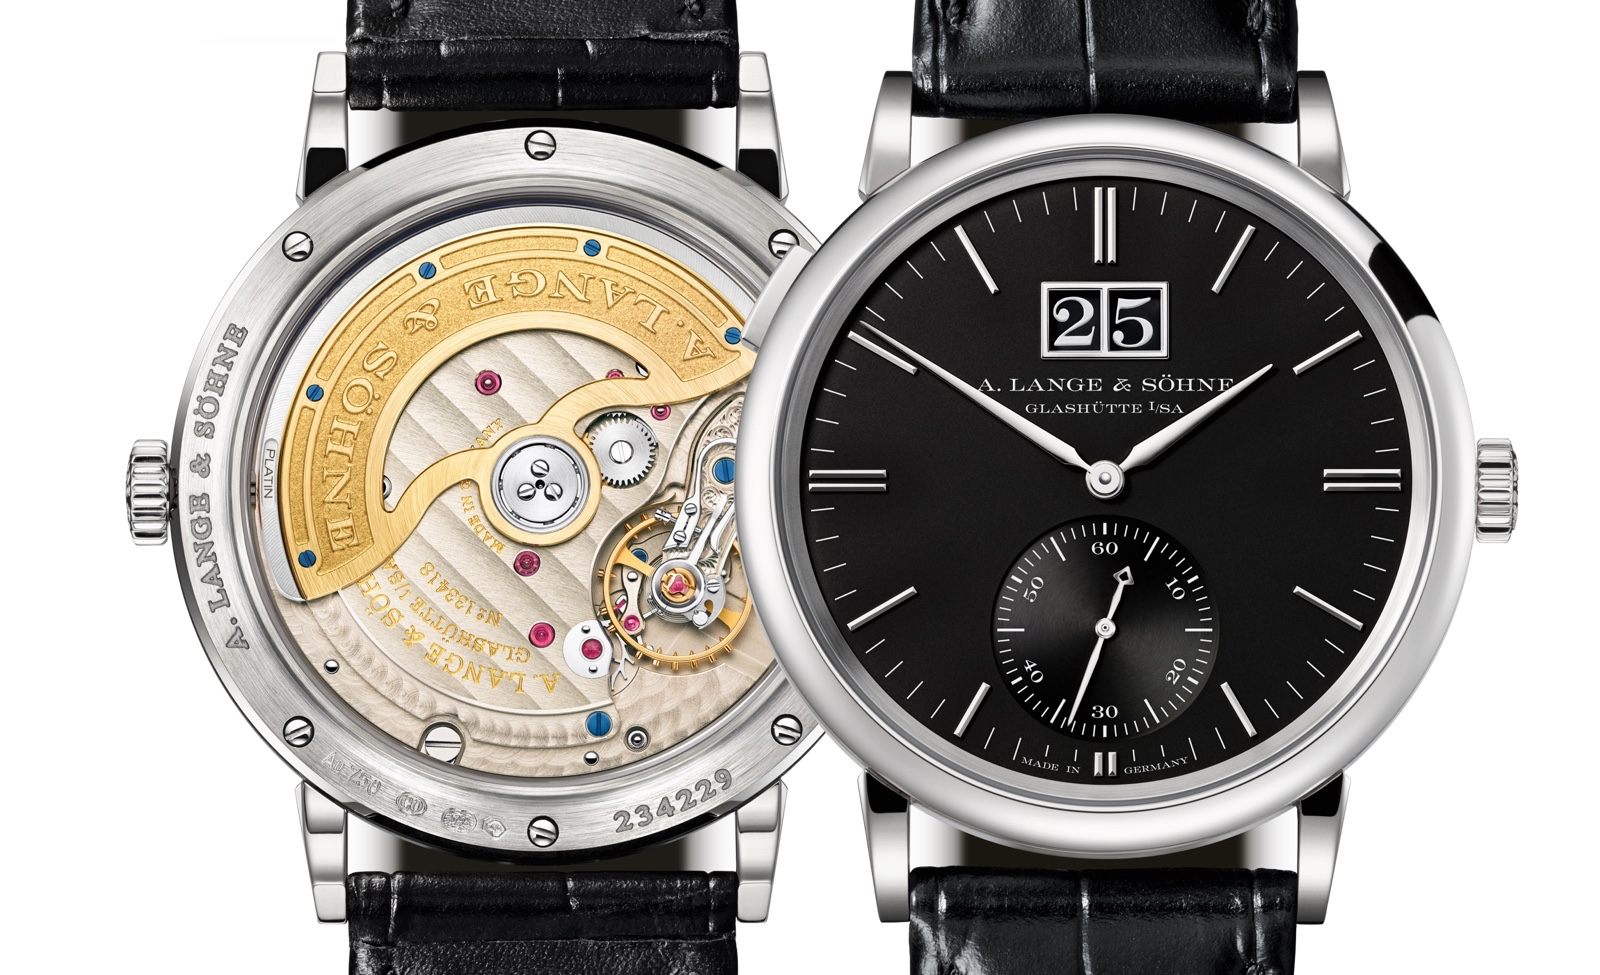 A. Lange & Sohne Saxonia Outsize Date White Gold